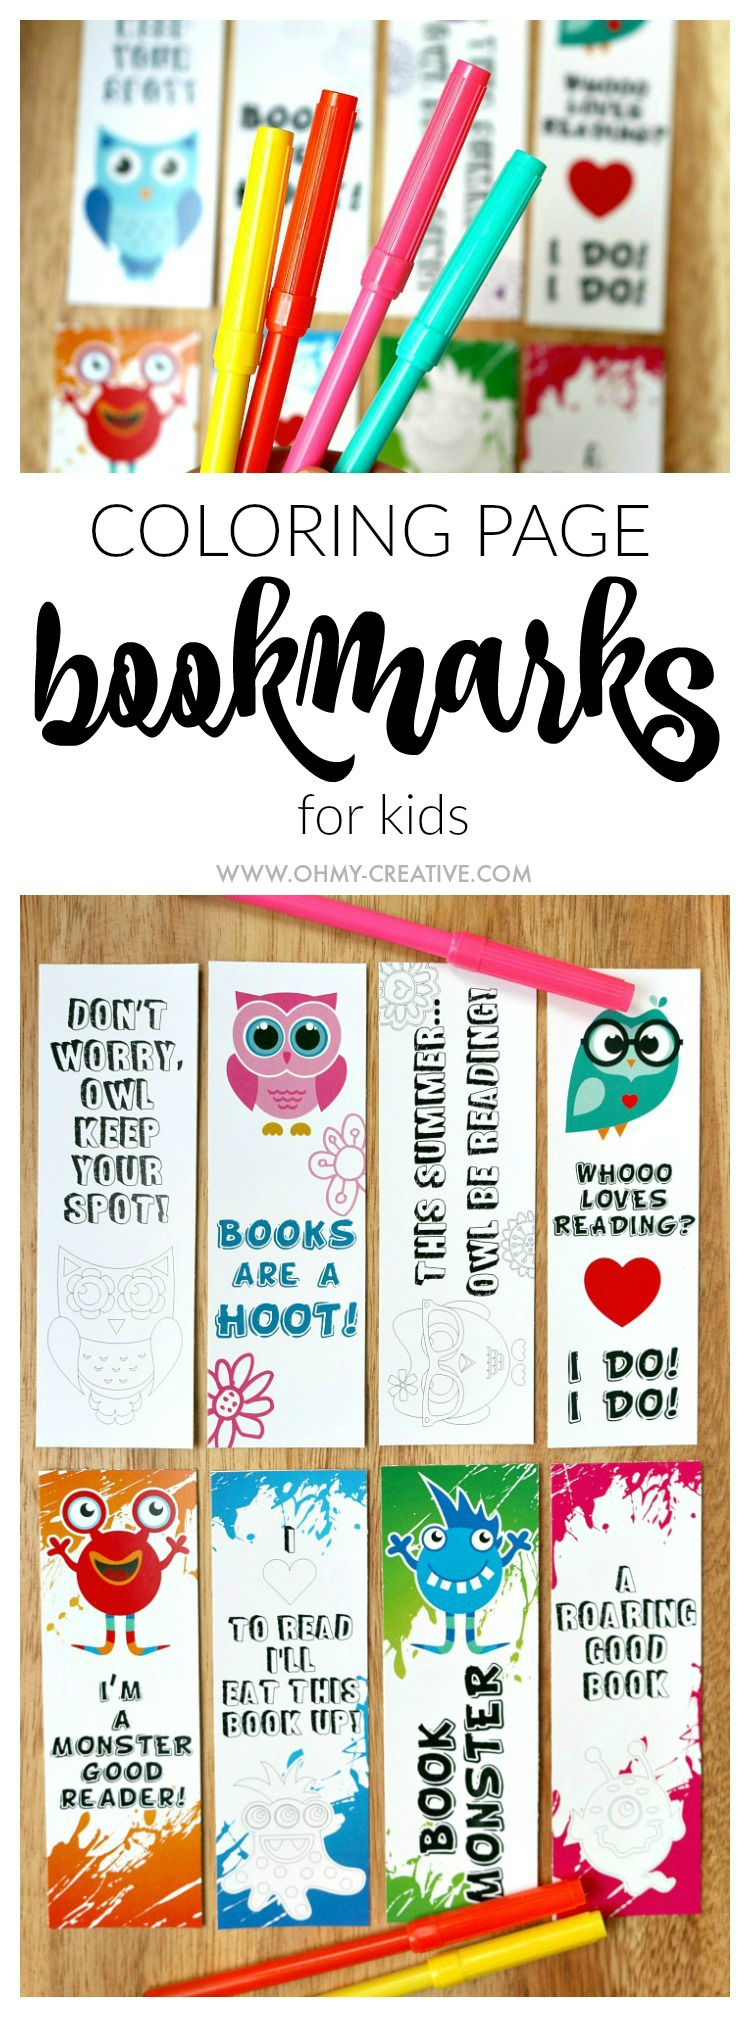 image about Free Printable Bookmarks for Kids known as Printable Bookmark Coloring Internet pages for Young children - Oh My Innovative